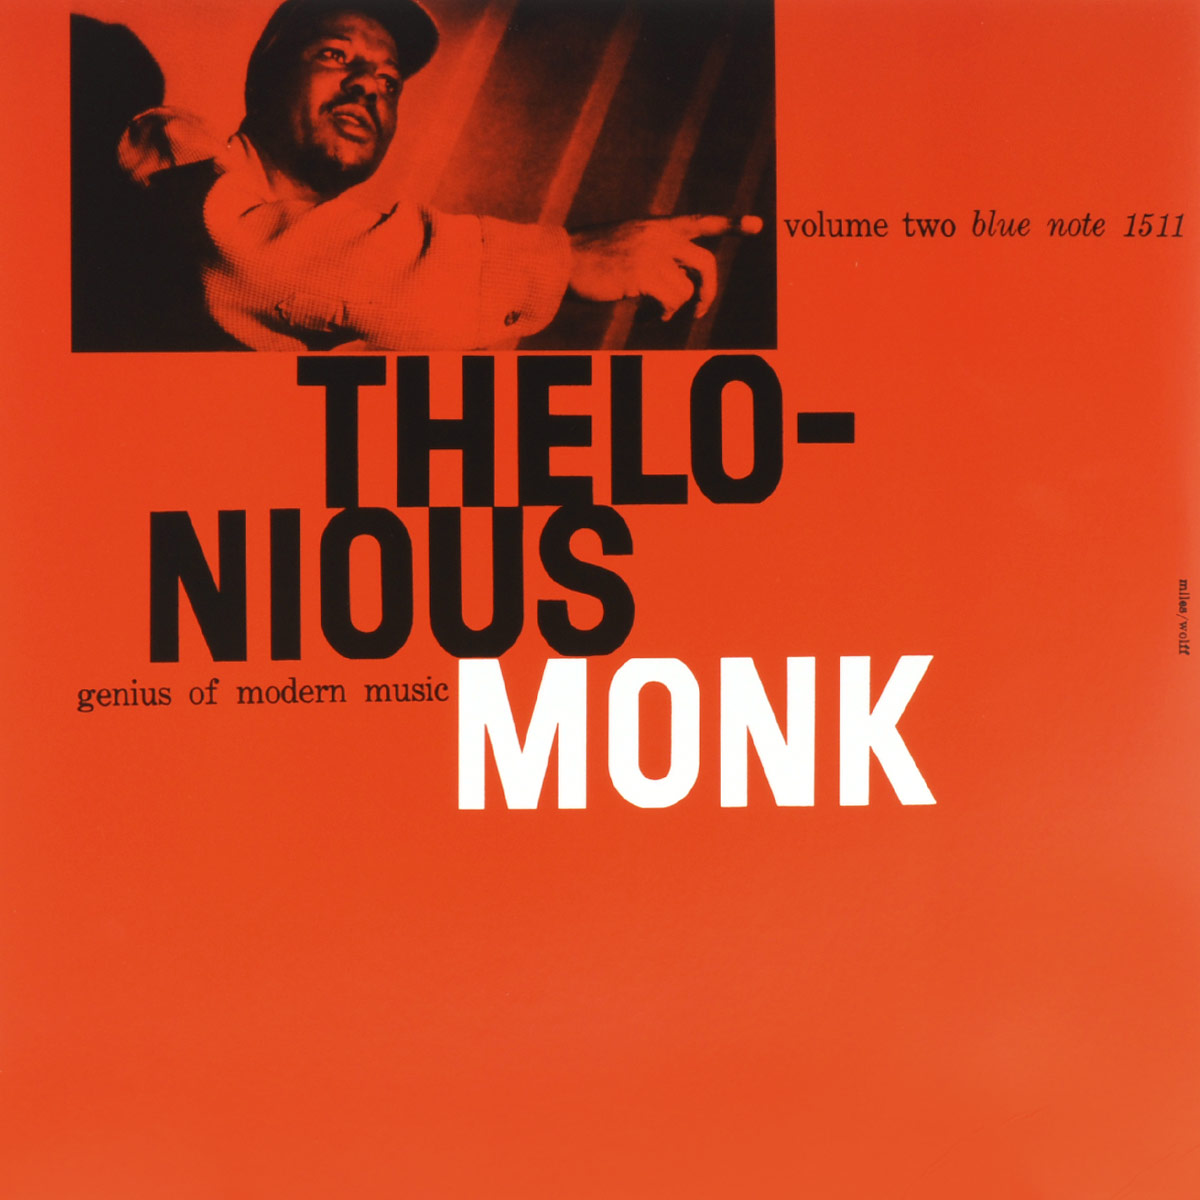 Телониус Монк Thelonious Monk. Genius Of Modern Music Vol.2 (LP) the thelonious monk orchestra the thelonious monk orchestra at town hall lp